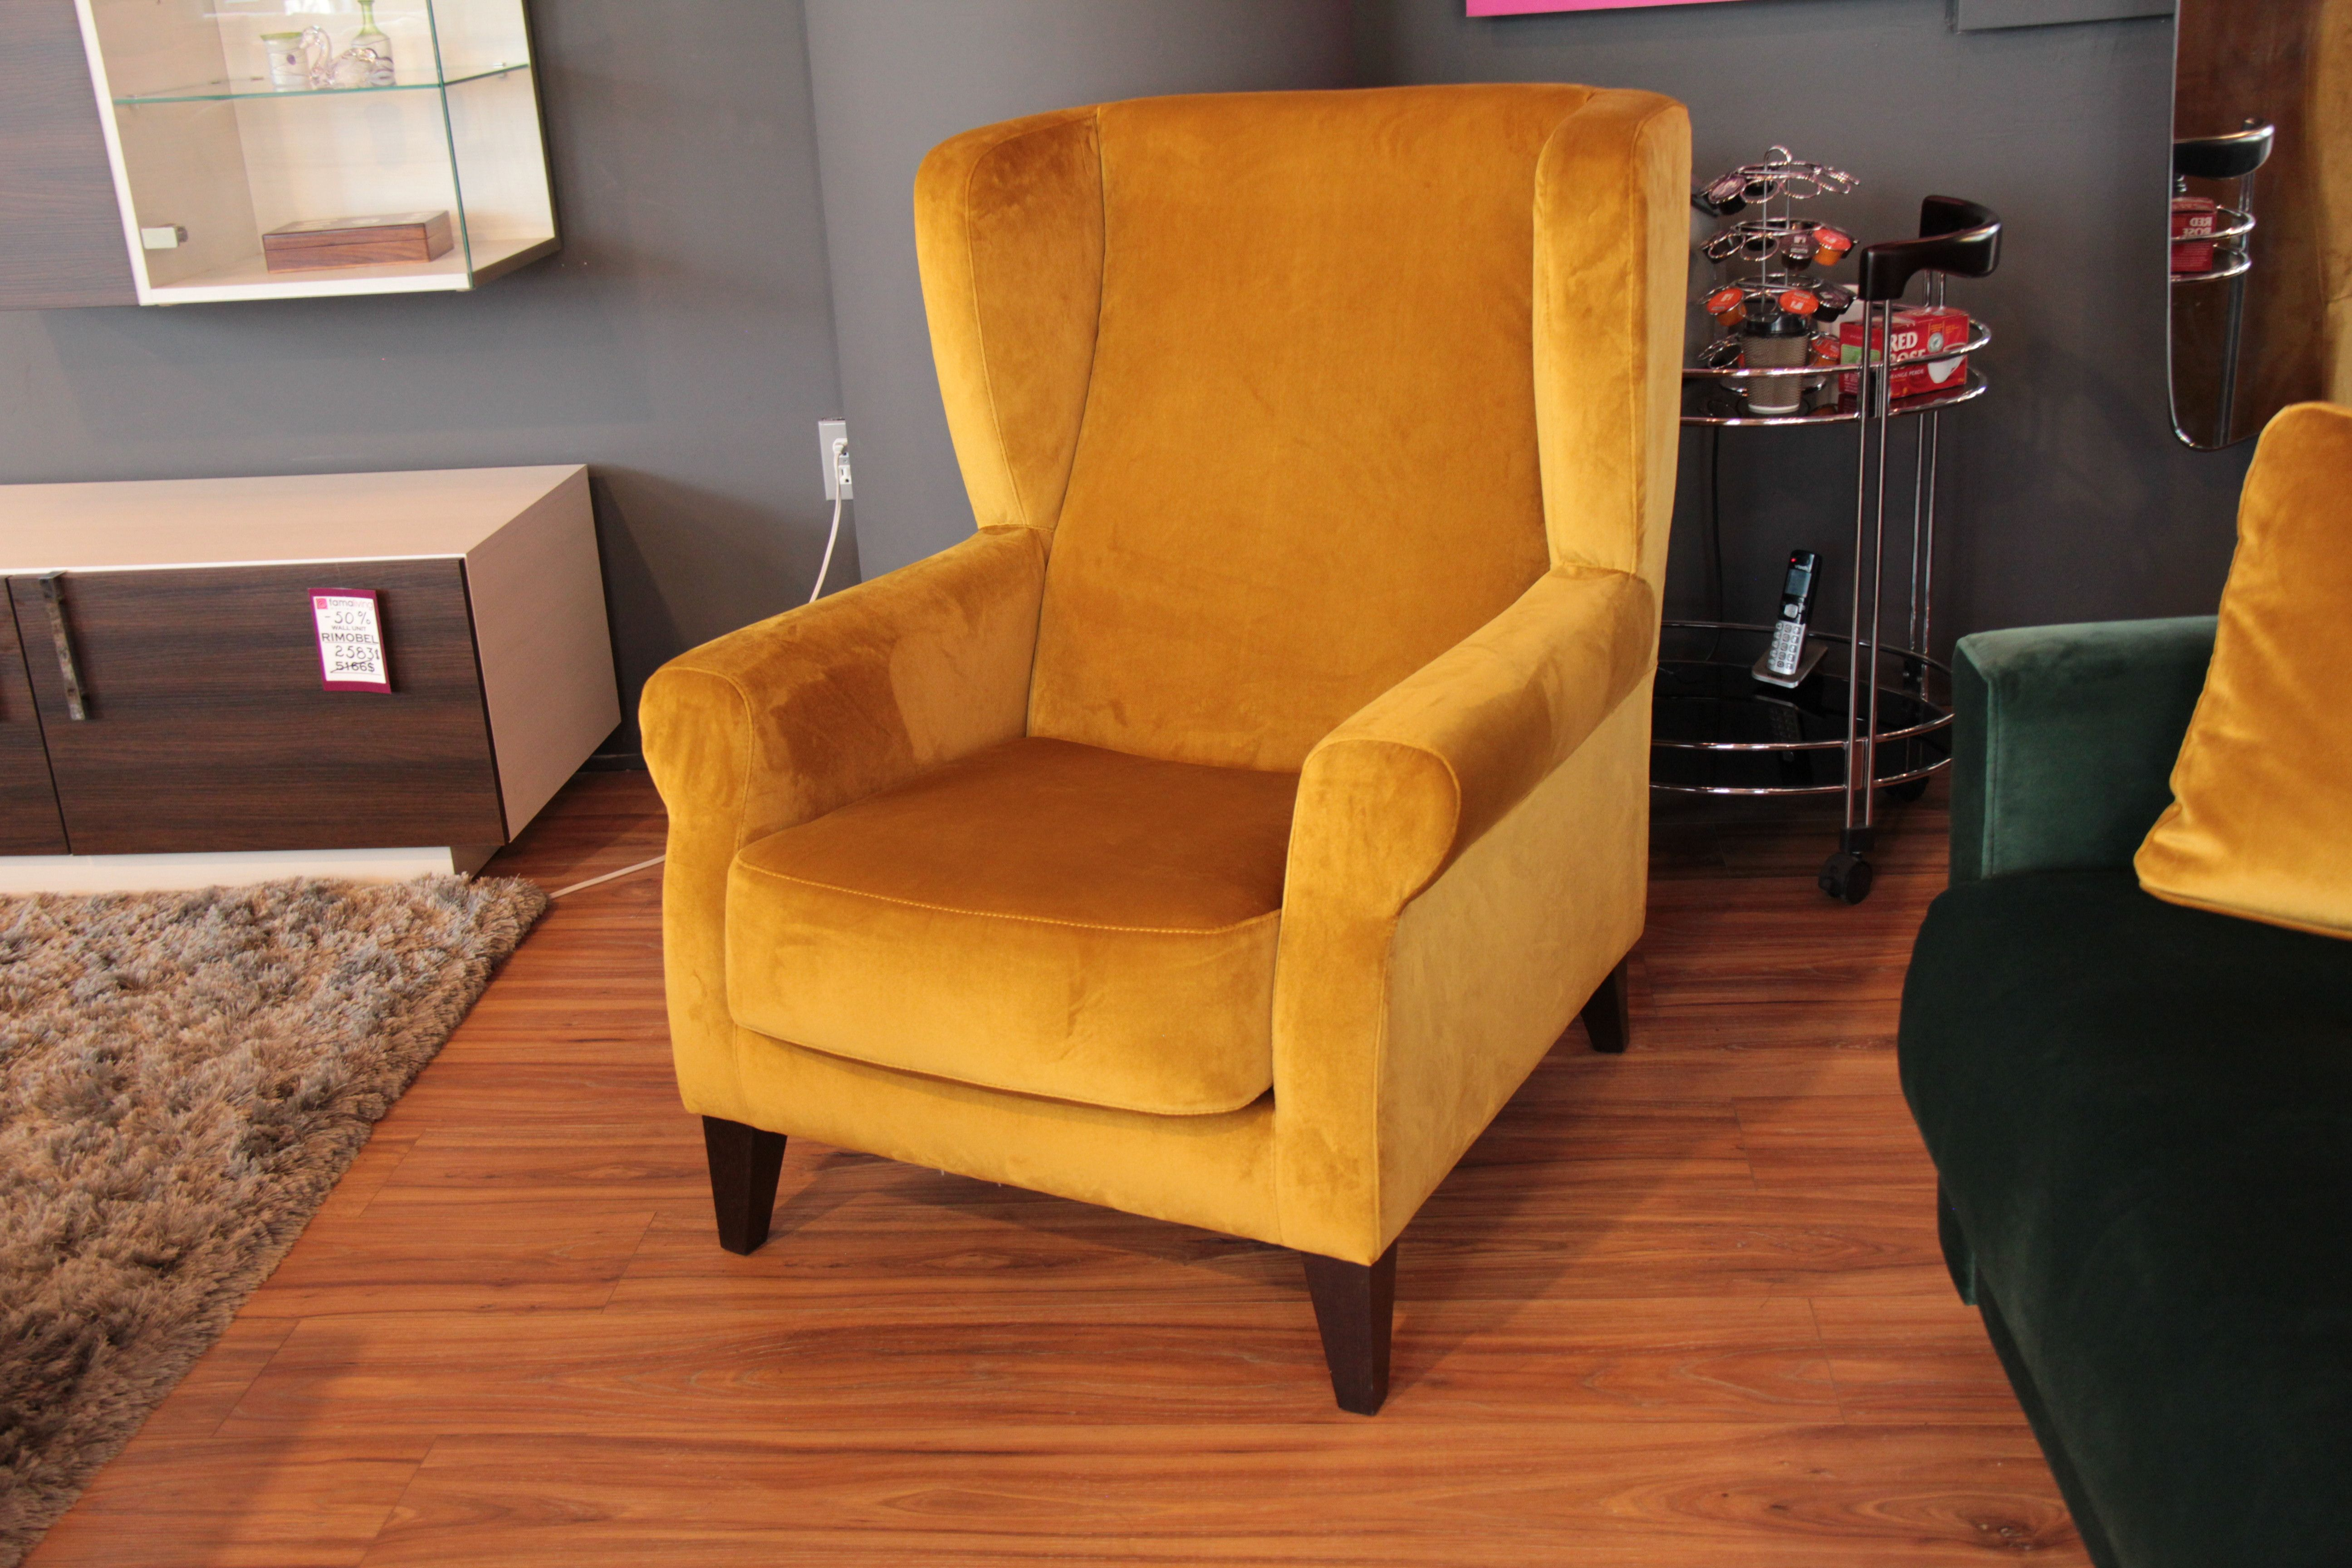 Oscar Chair By Fama 2000 Boul St Laurent Fama Living Montreal 514